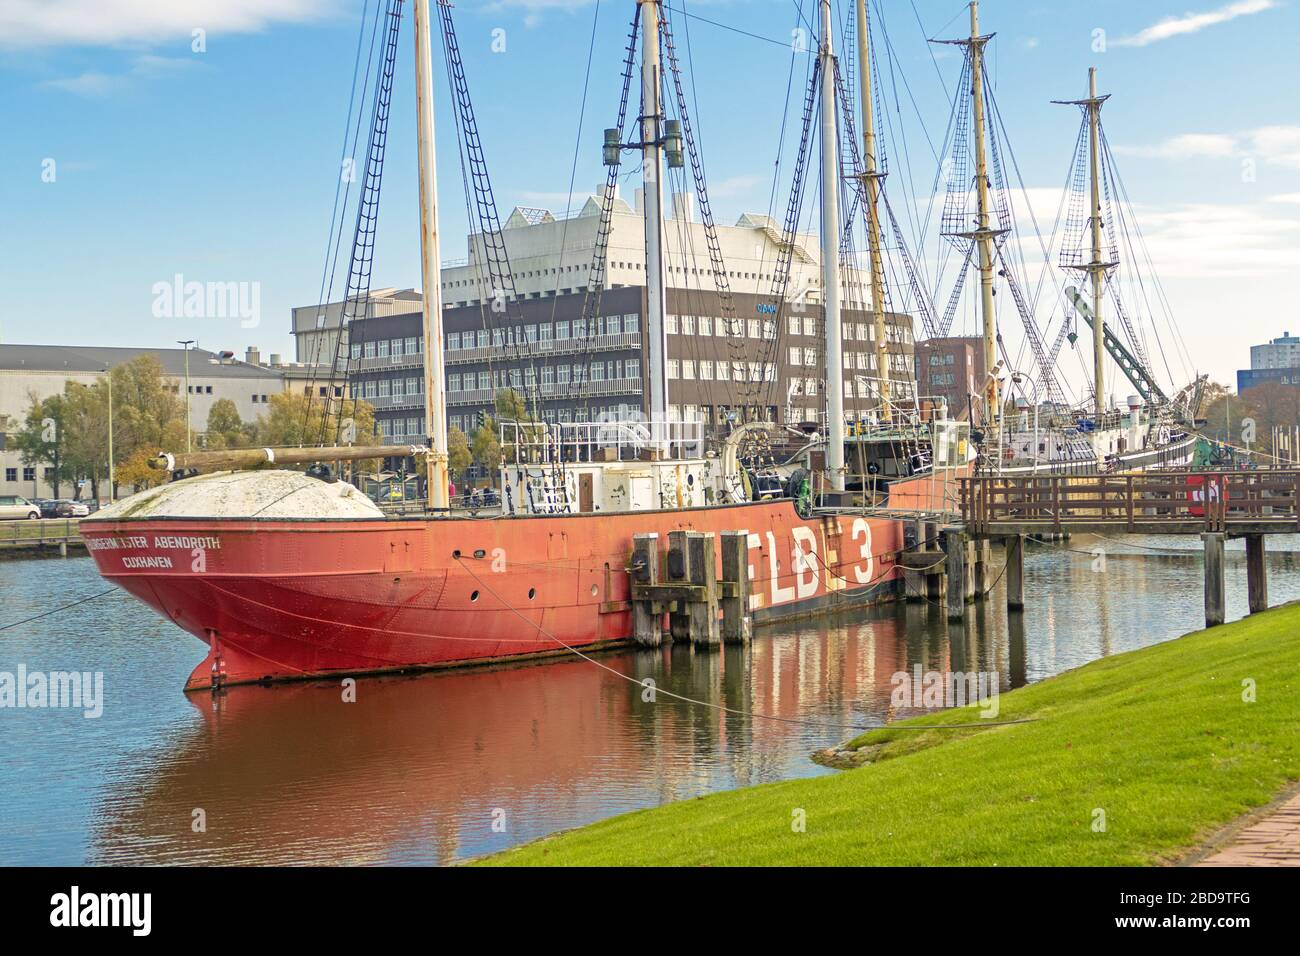 "BREMERHAVEN, GERMANY - November 10, 2019: Historic lightship called ""Elbe 3"" in port of Bremerhaven Stock Photo"